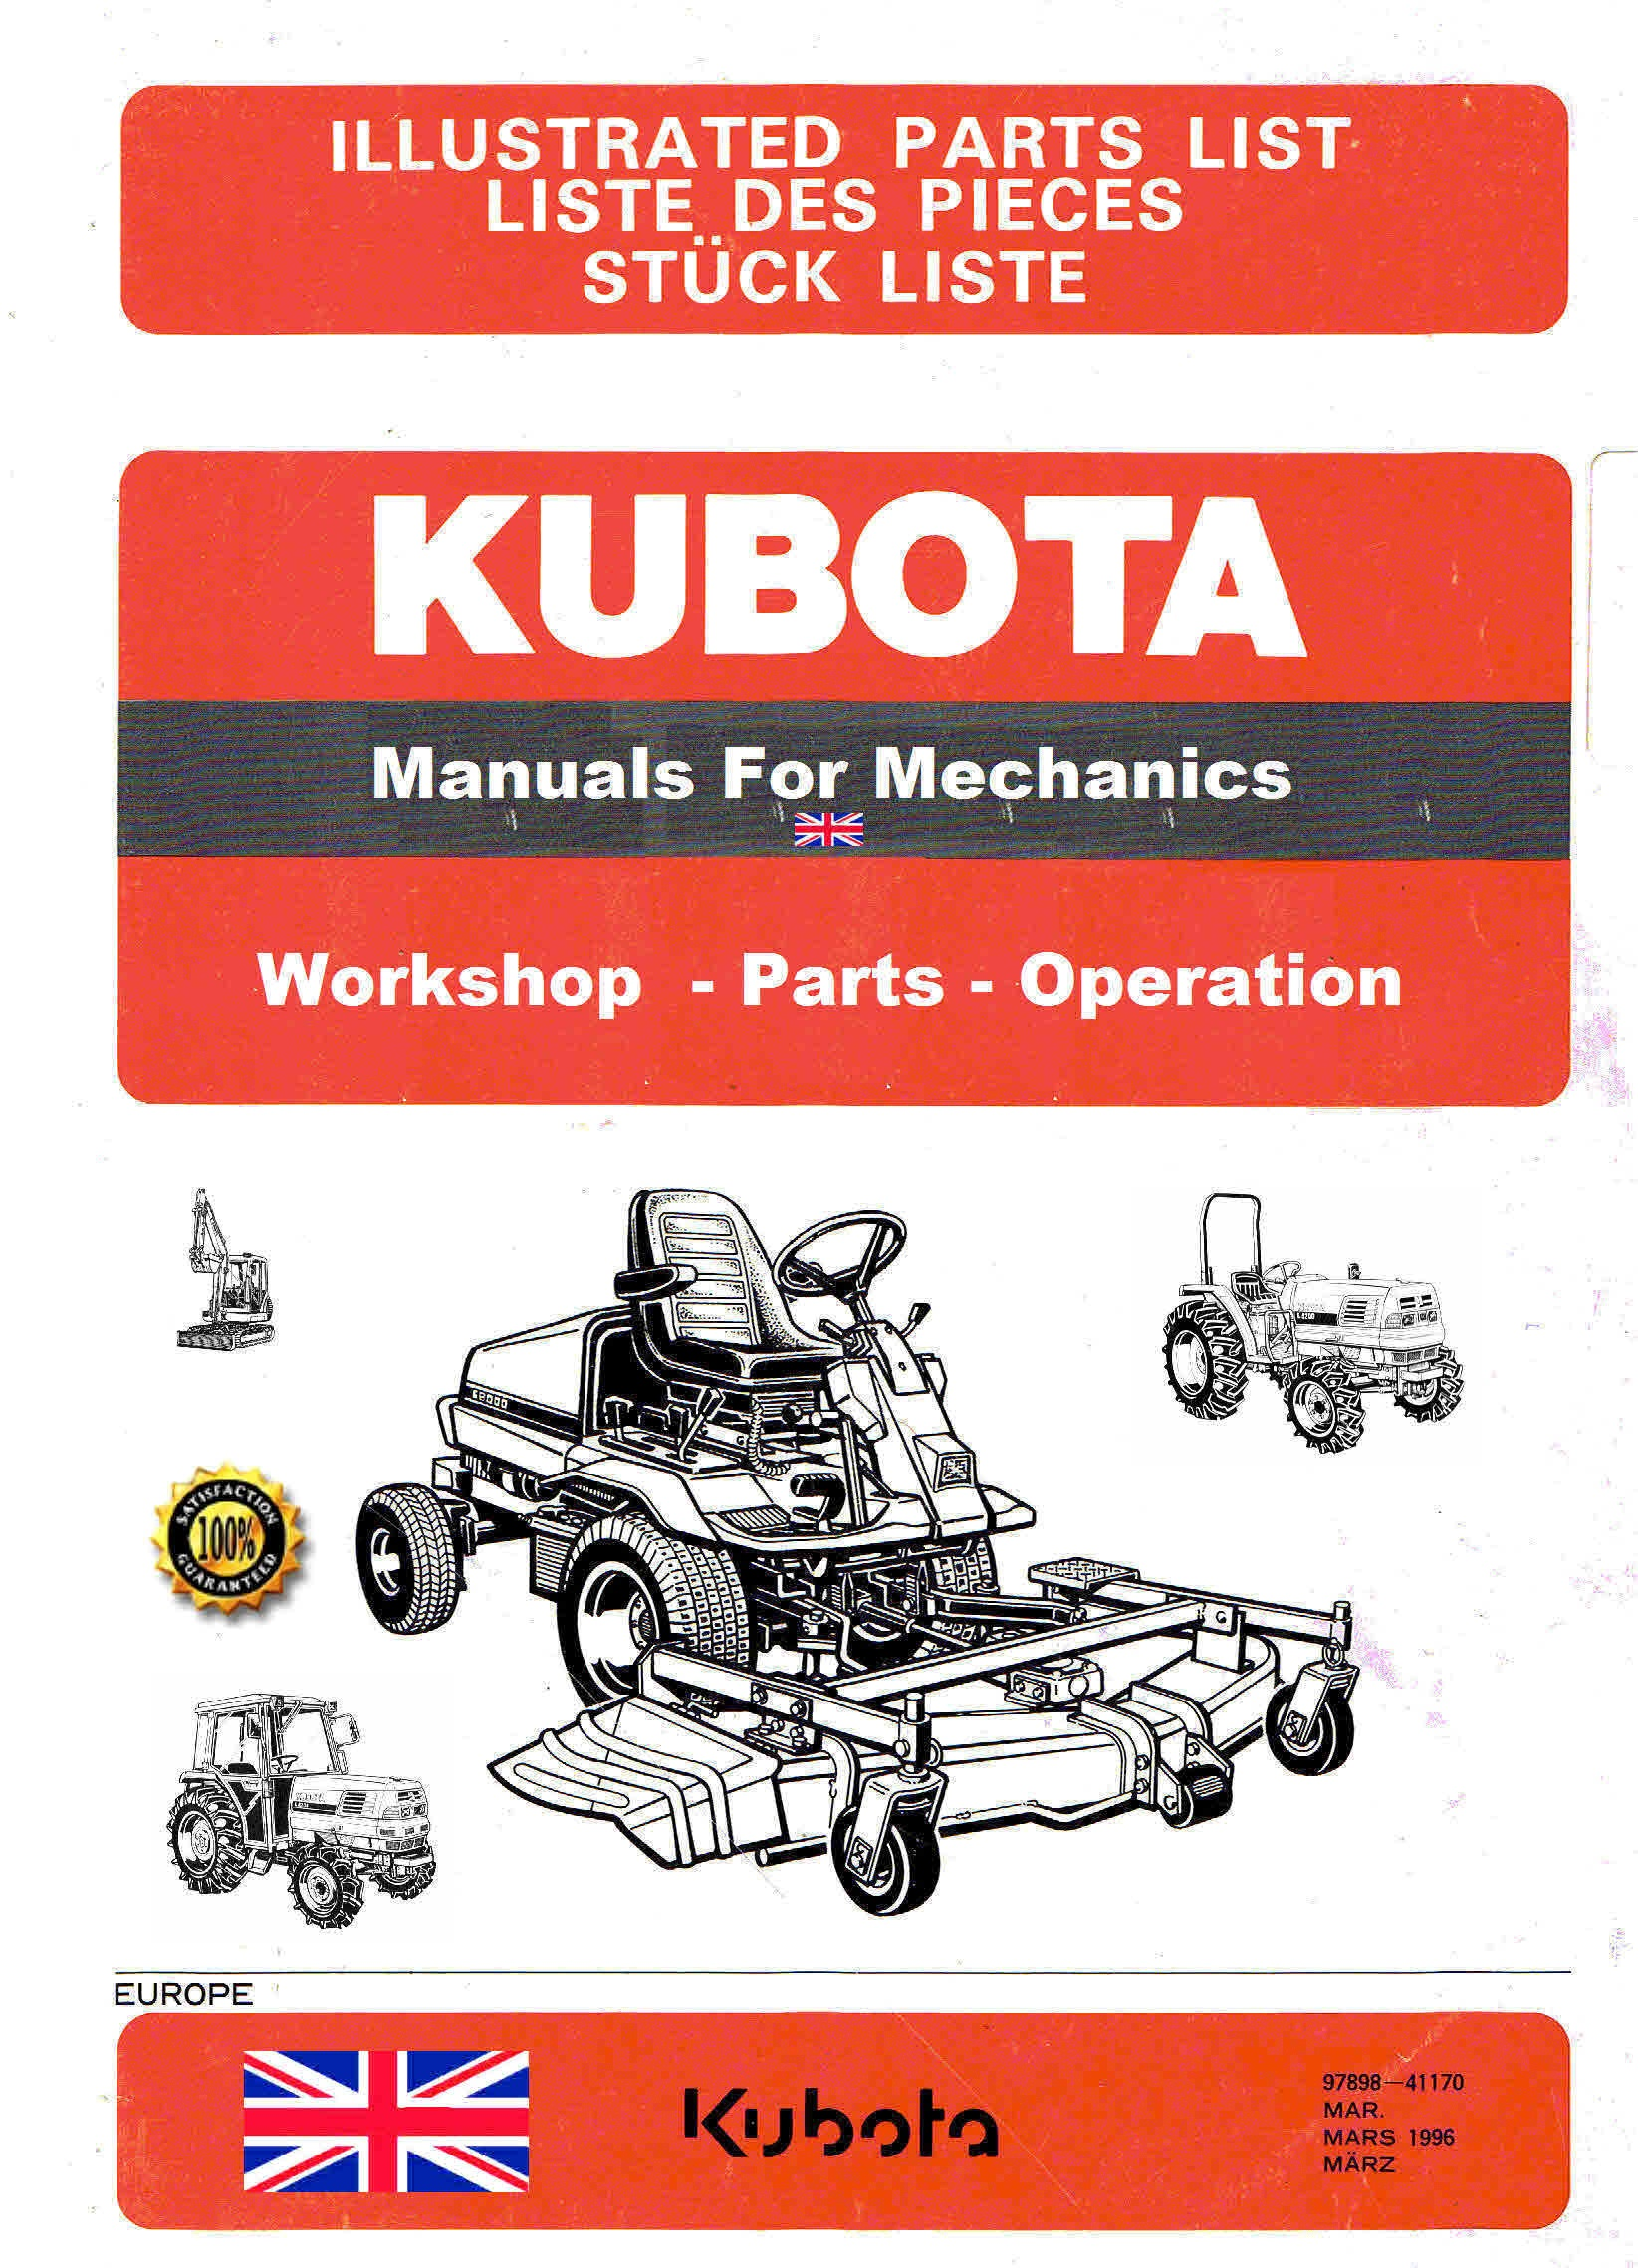 kubota manuals for mechanics themanualman rh sellfy com kubota b7500 owners manual download kubota b7500 owners manual download